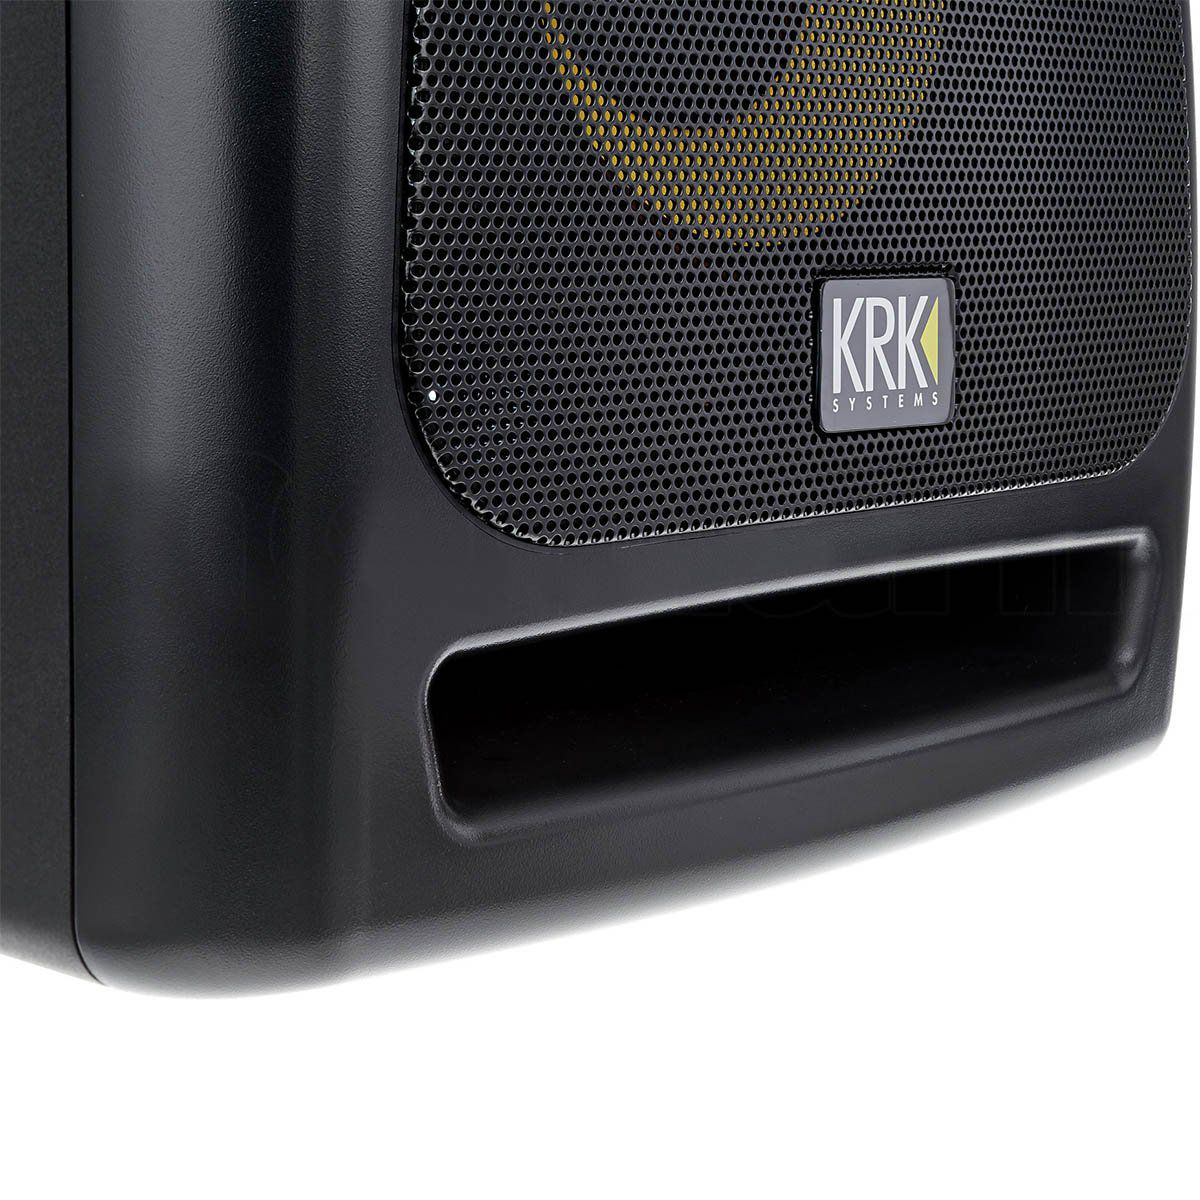 Krk Rokit 10s Powered Subwoofer Monitor de Audio Ativo Krk RP10S Rokit Powered 150W